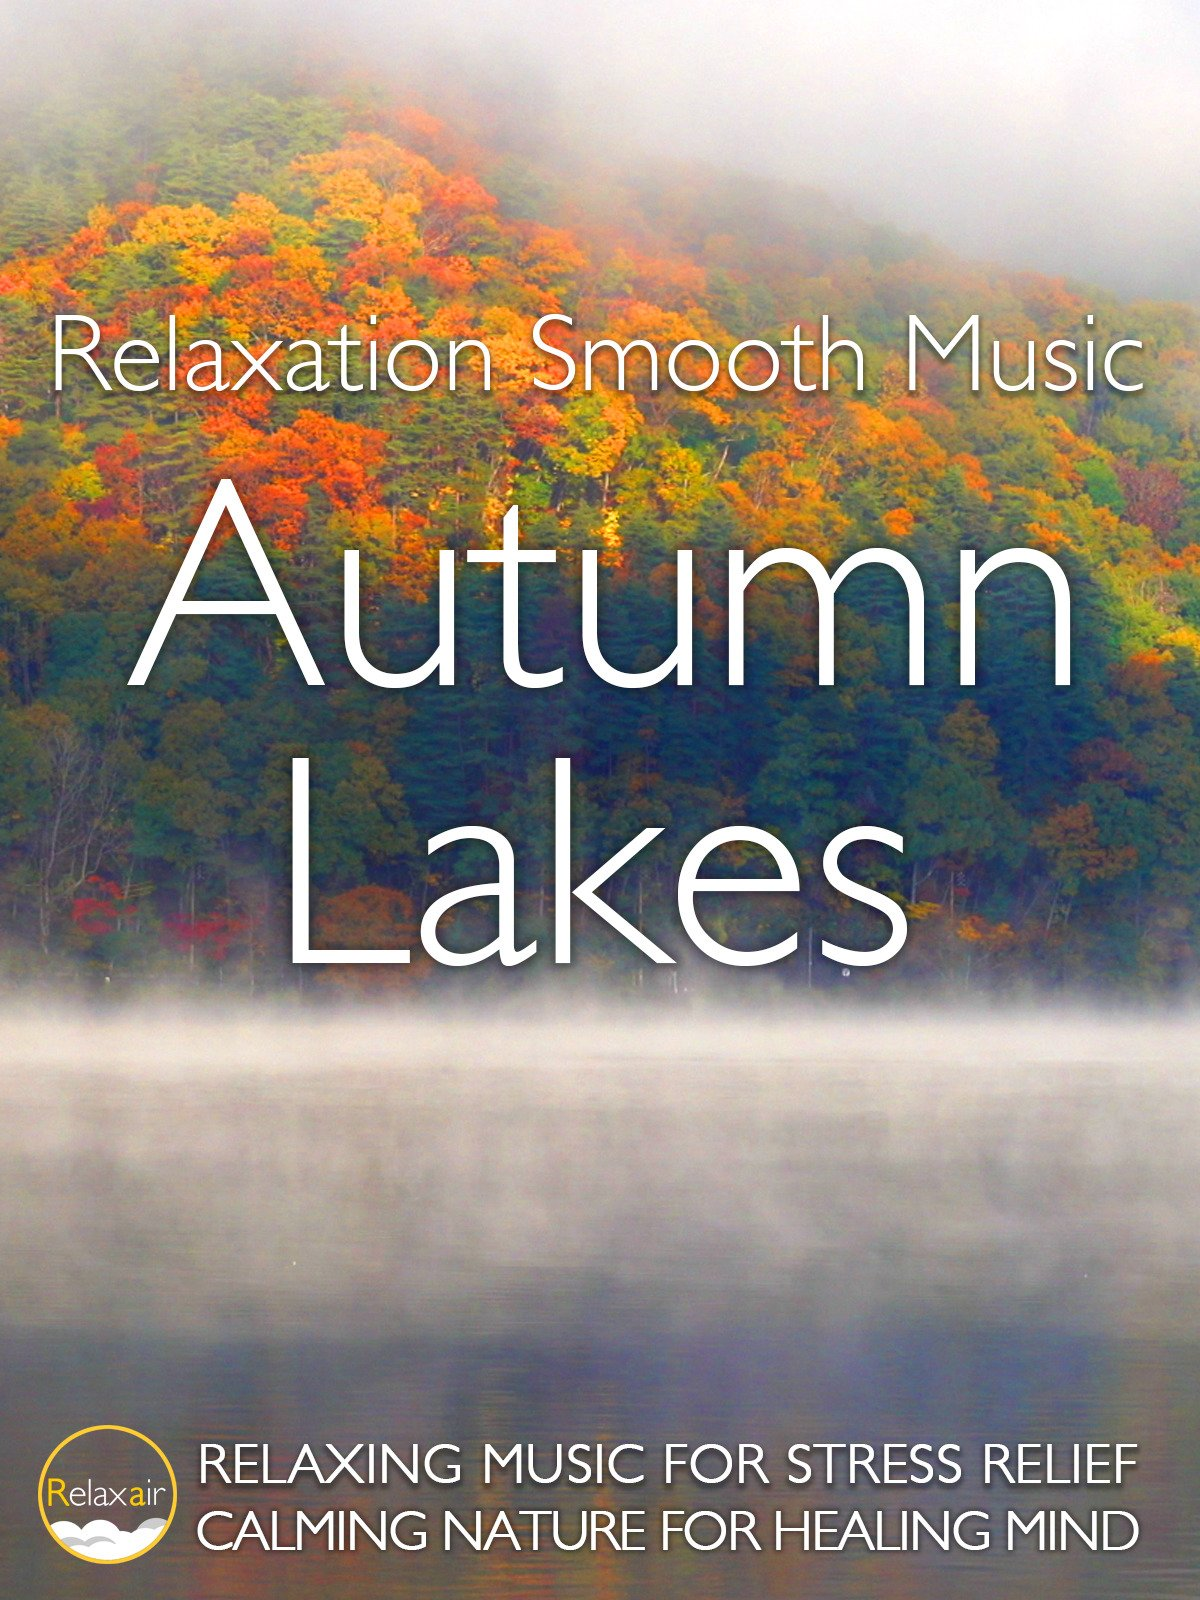 Relaxation Smooth Music Autumn Lakes Relaxing Music for Stress Relief Calming Nature for Healing Mind on Amazon Prime Instant Video UK